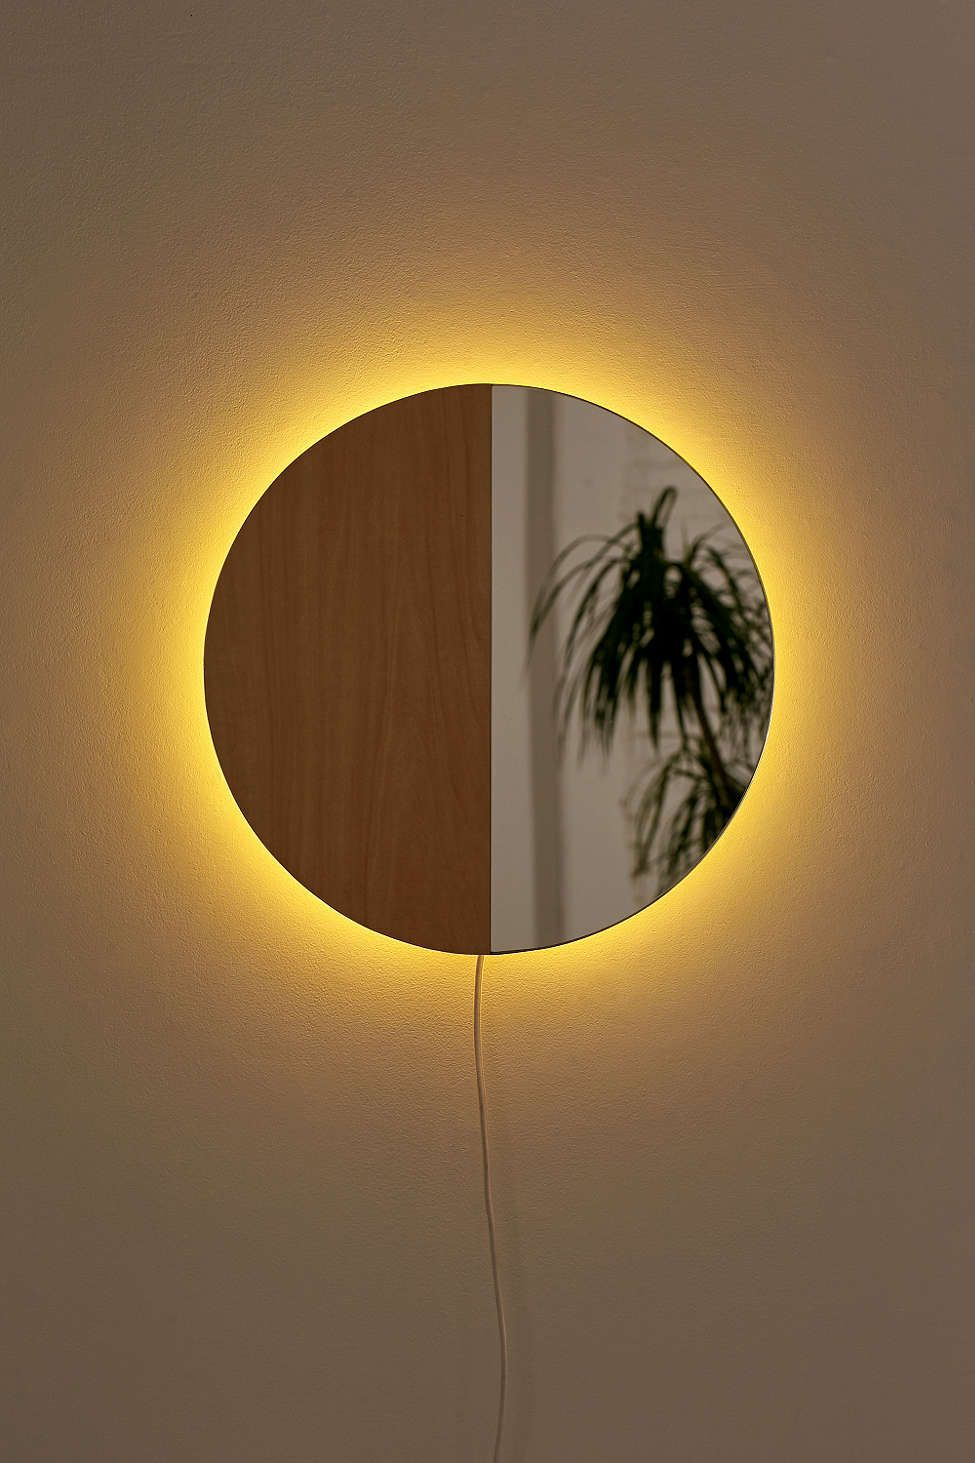 Circle Mirror Sconce | crafty | Pinterest | Woods, Lights and Room ideas